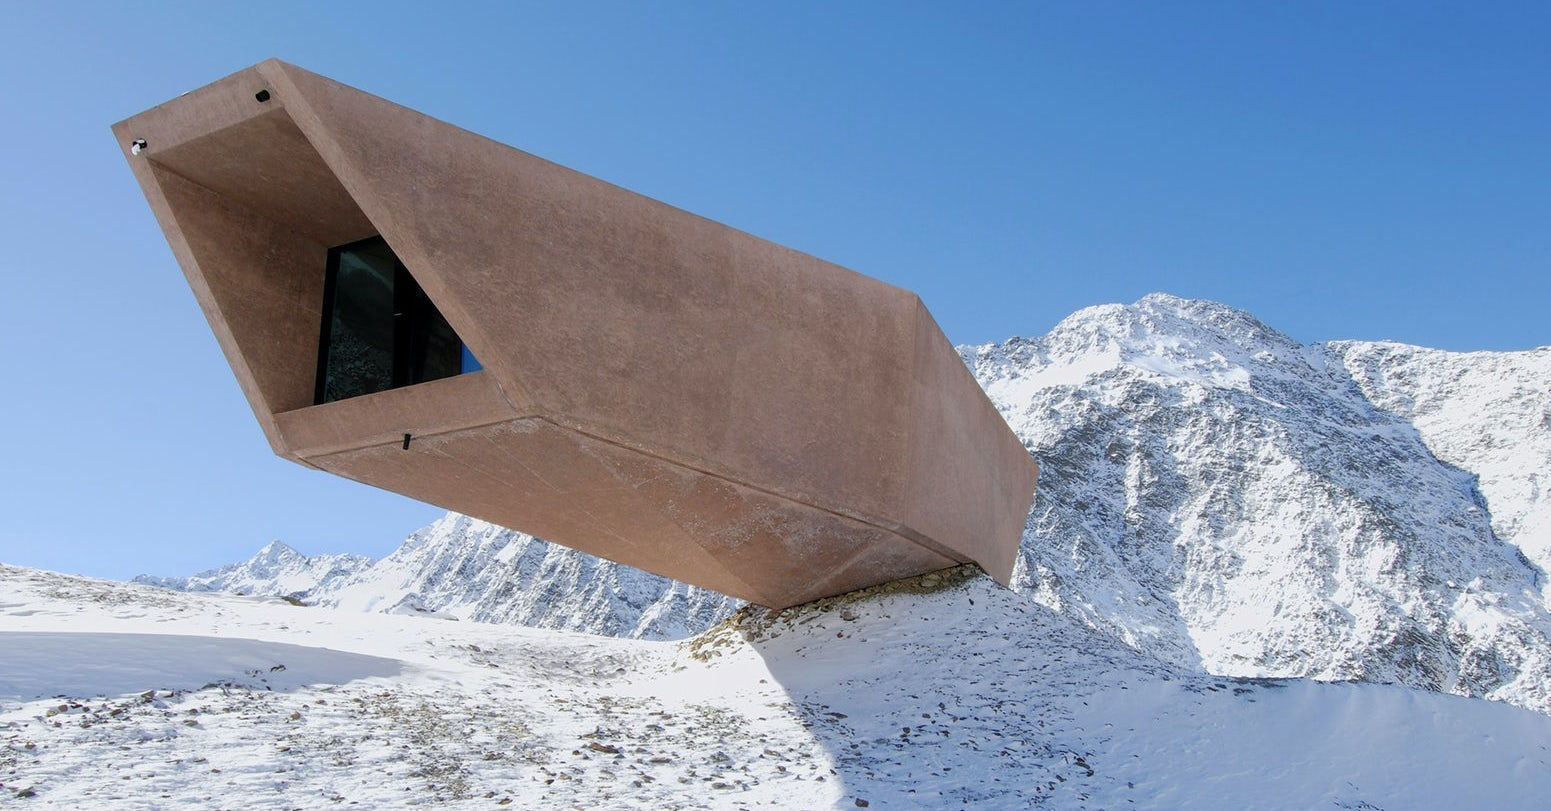 Hungover: 7 Modern Pavilions Taking Cantilevers to the Extreme